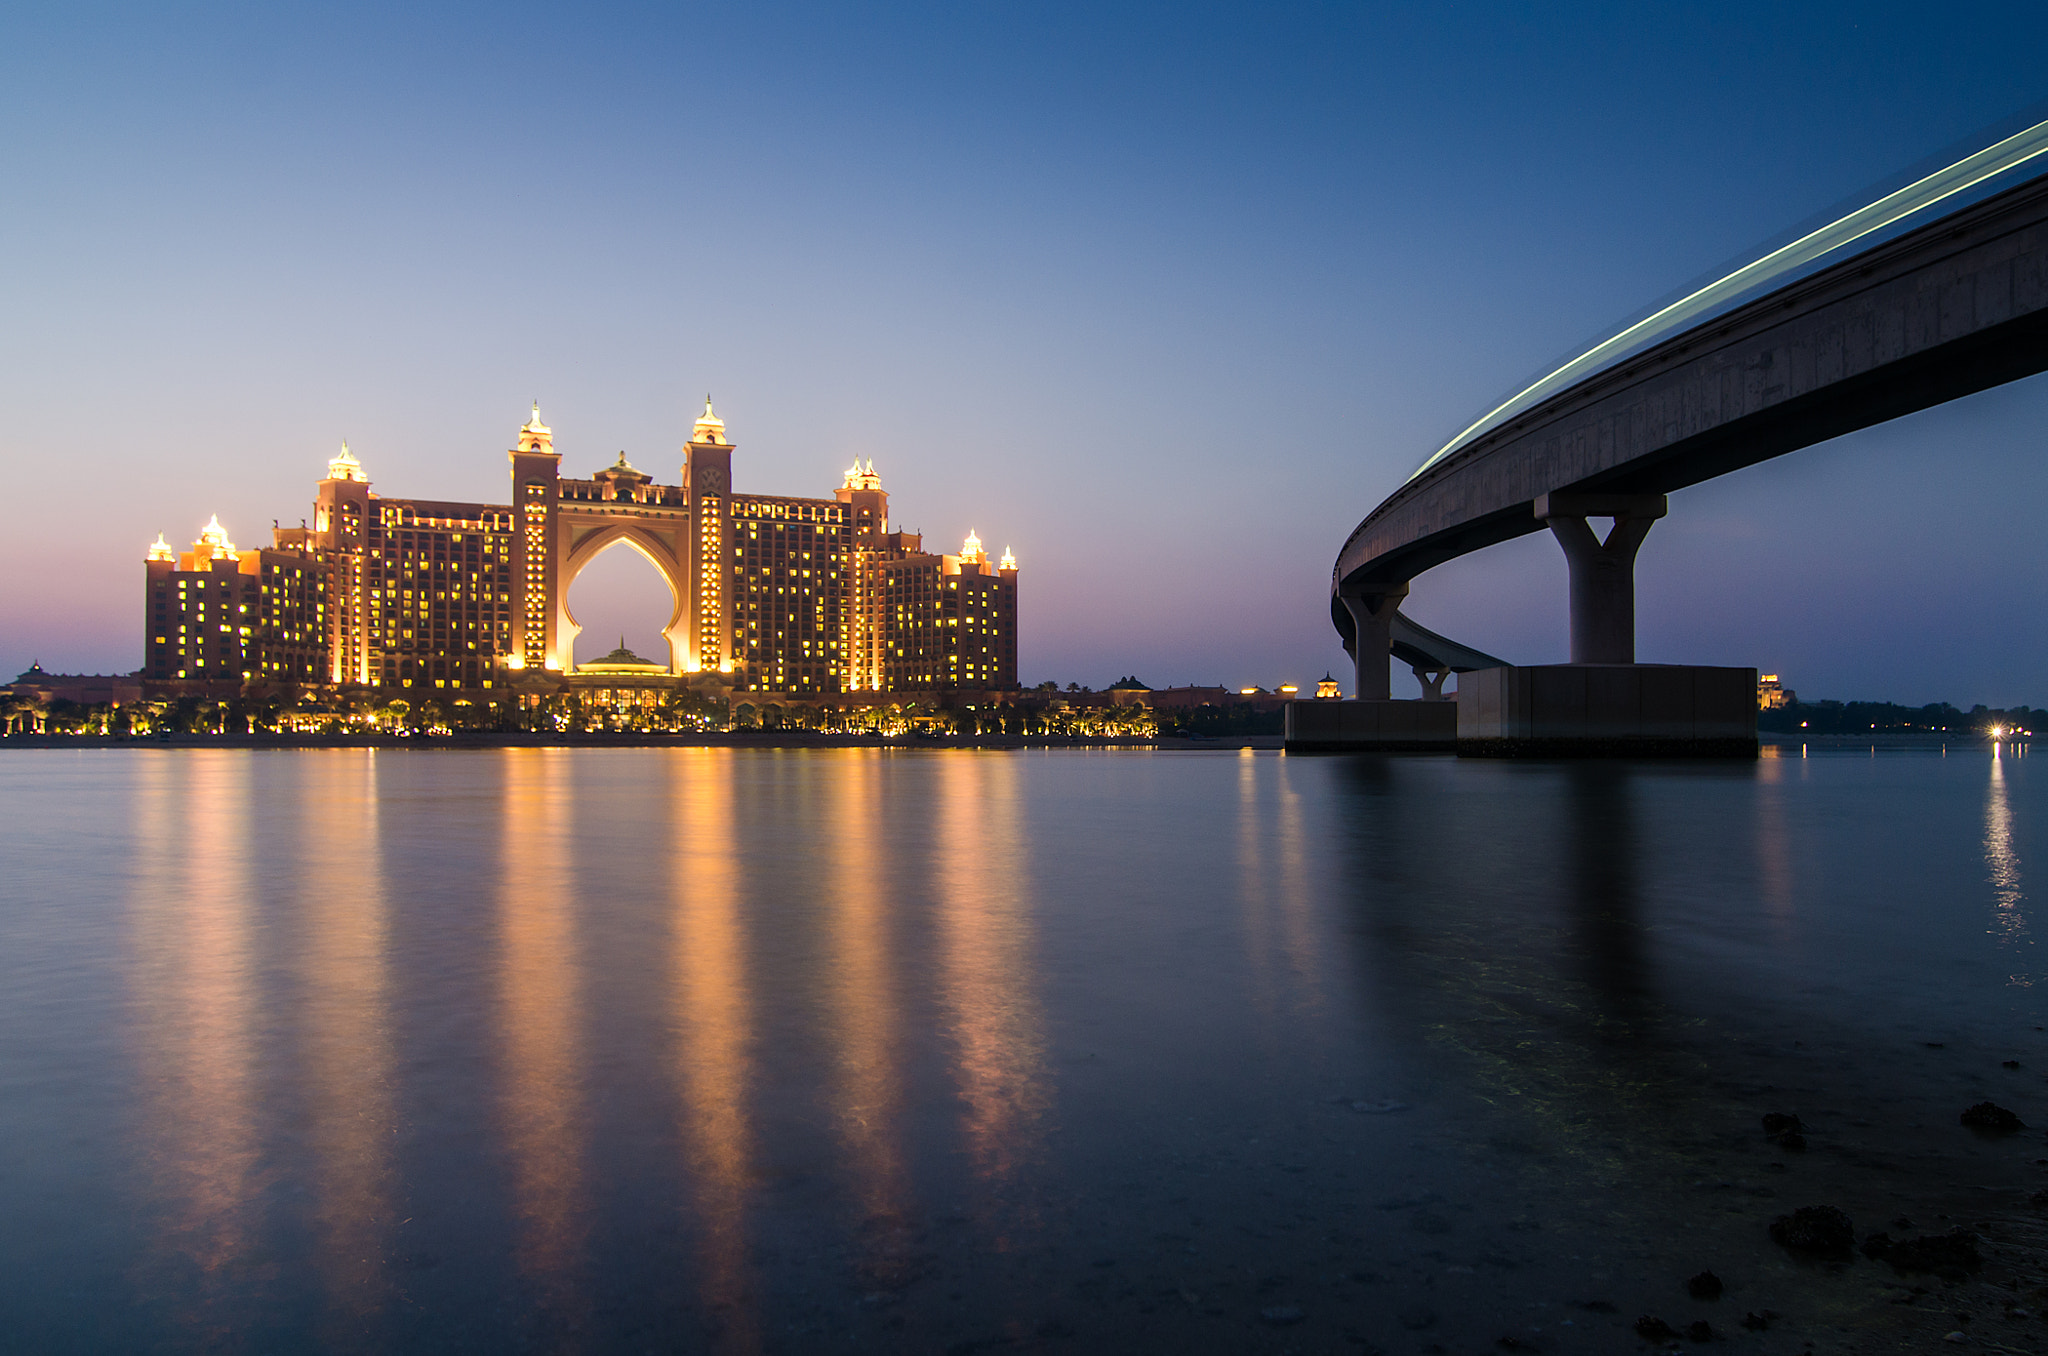 Photograph Atlantis The Palm by Hani Atassi on 500px